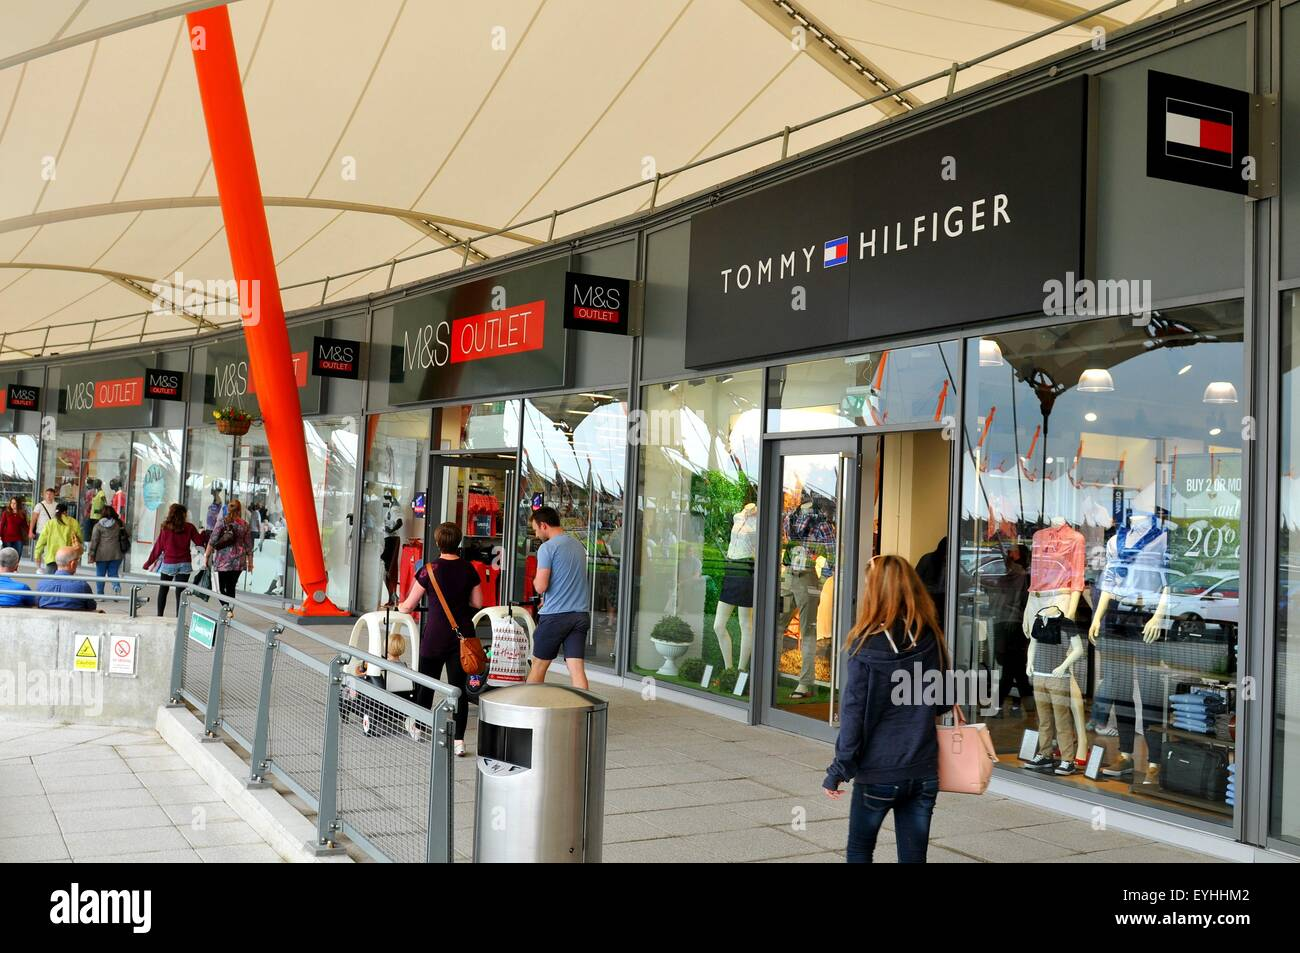 ff448395 London, UK - June 14, 2015: People pass by the Tommy Hilfiger shop. Tommy  Hilfiger is a famous worldwide American fashion